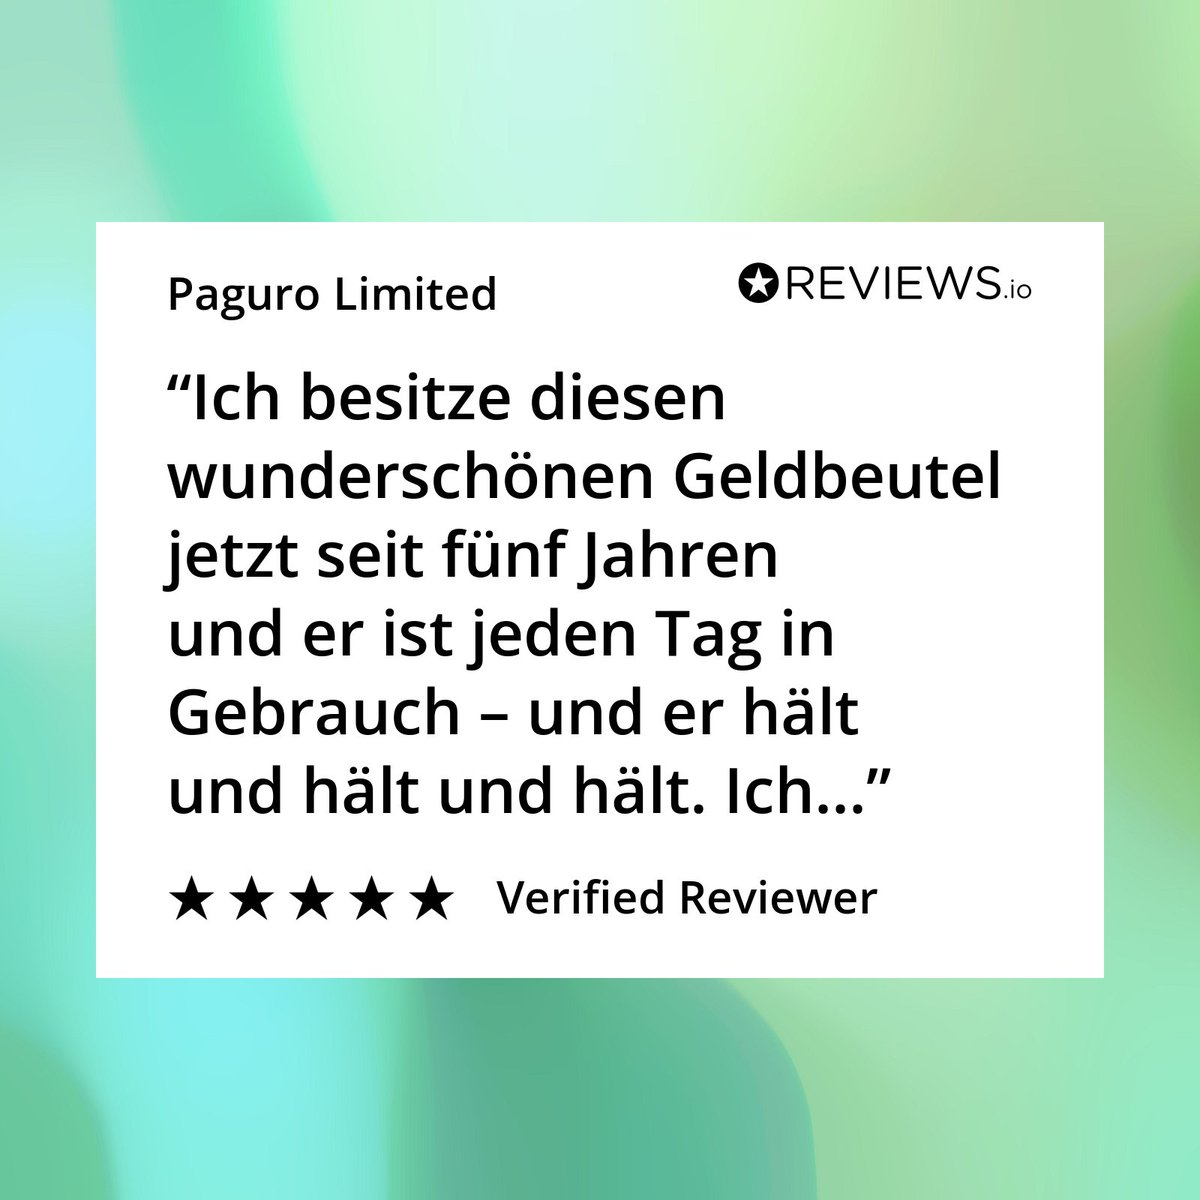 Vielen Dank für die tolle Bewertung!It's an amazing feeling to receive a review from a customer who is still loving their purse after 5 years! https://buff.ly/2LqSmwX  . #Geldbeutel #veganpurse #sustainablefashion #madetolastpic.twitter.com/endepndUib